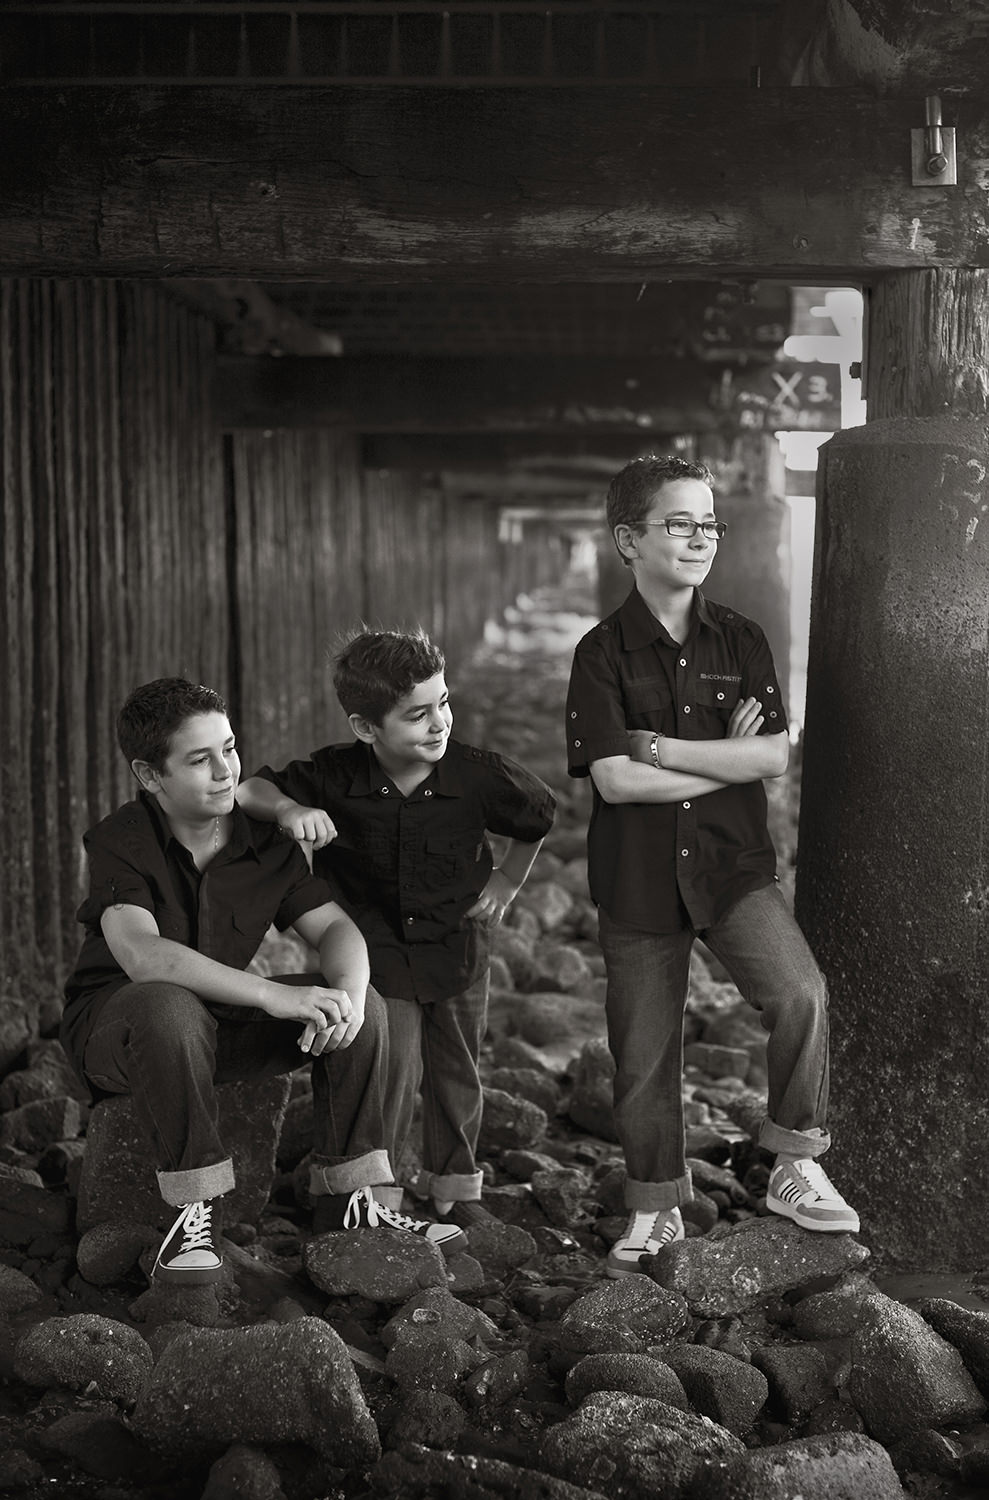 shorncliffe jetty-black and white portraits- brothers portraits- boys at beach-low key portrait